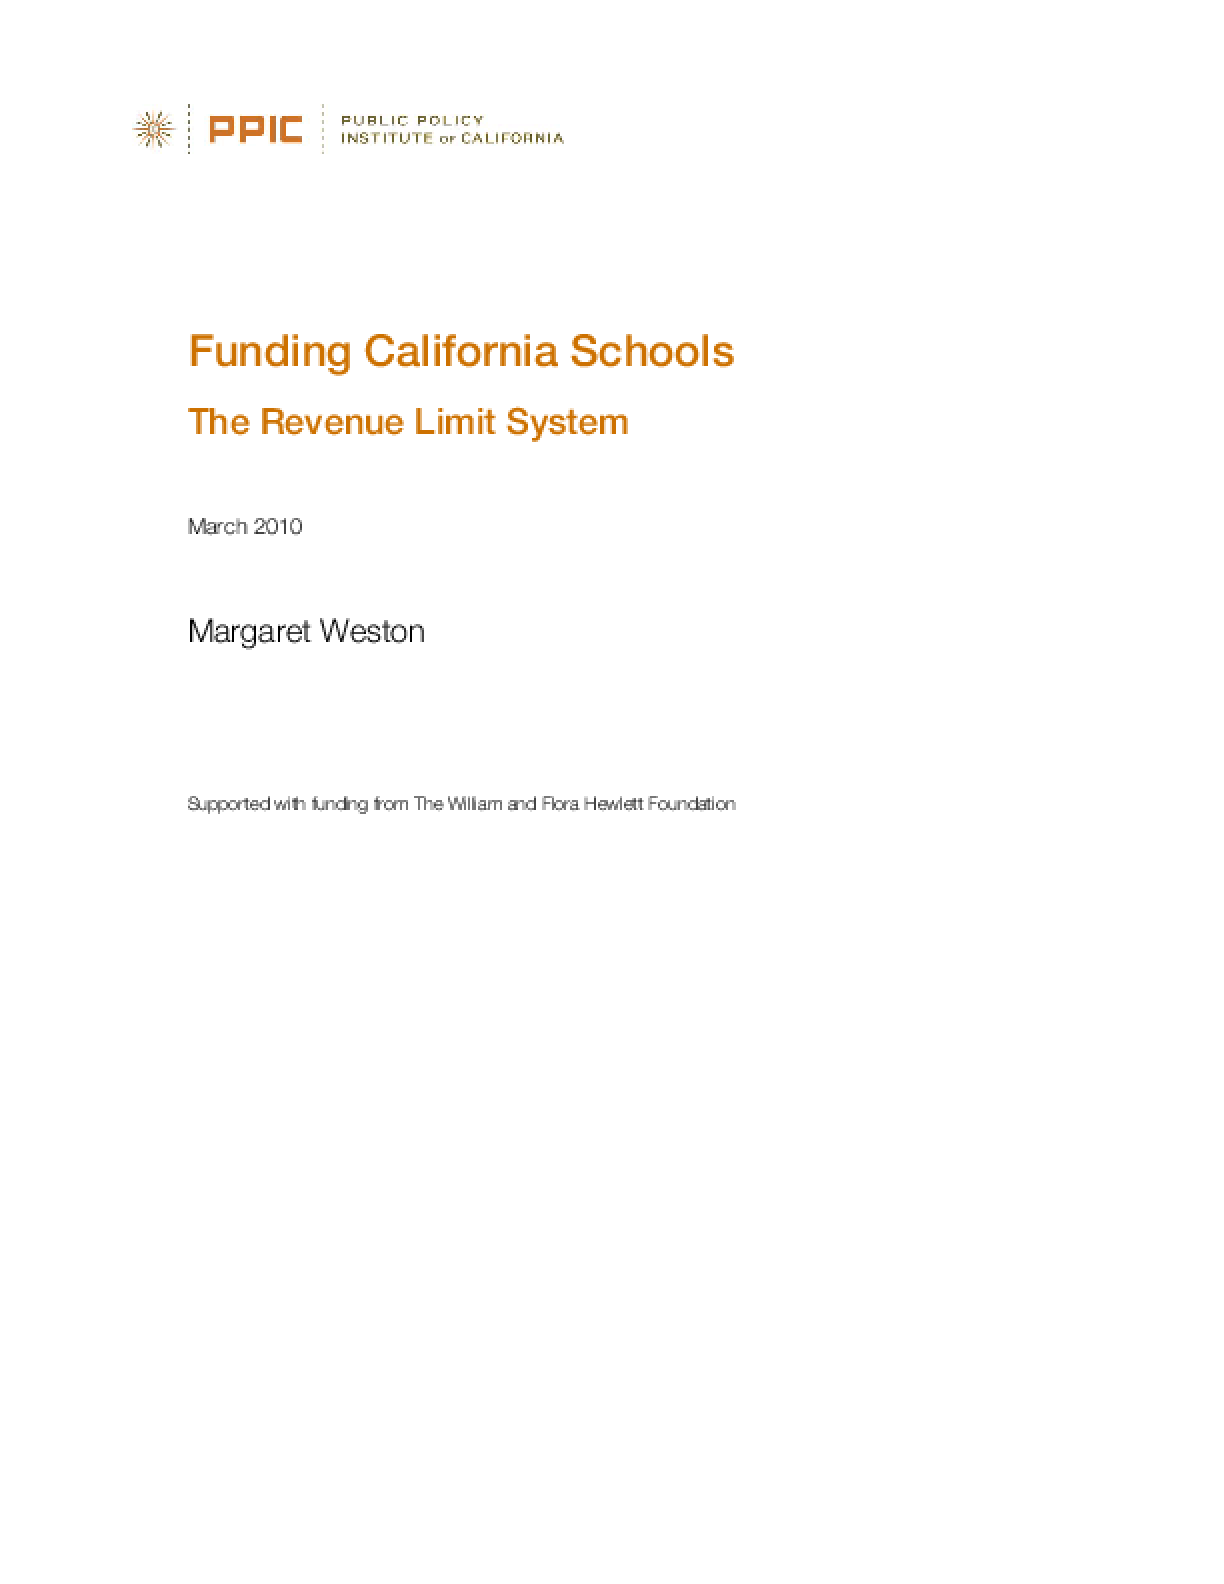 Funding California Schools: The Revenue Limit System